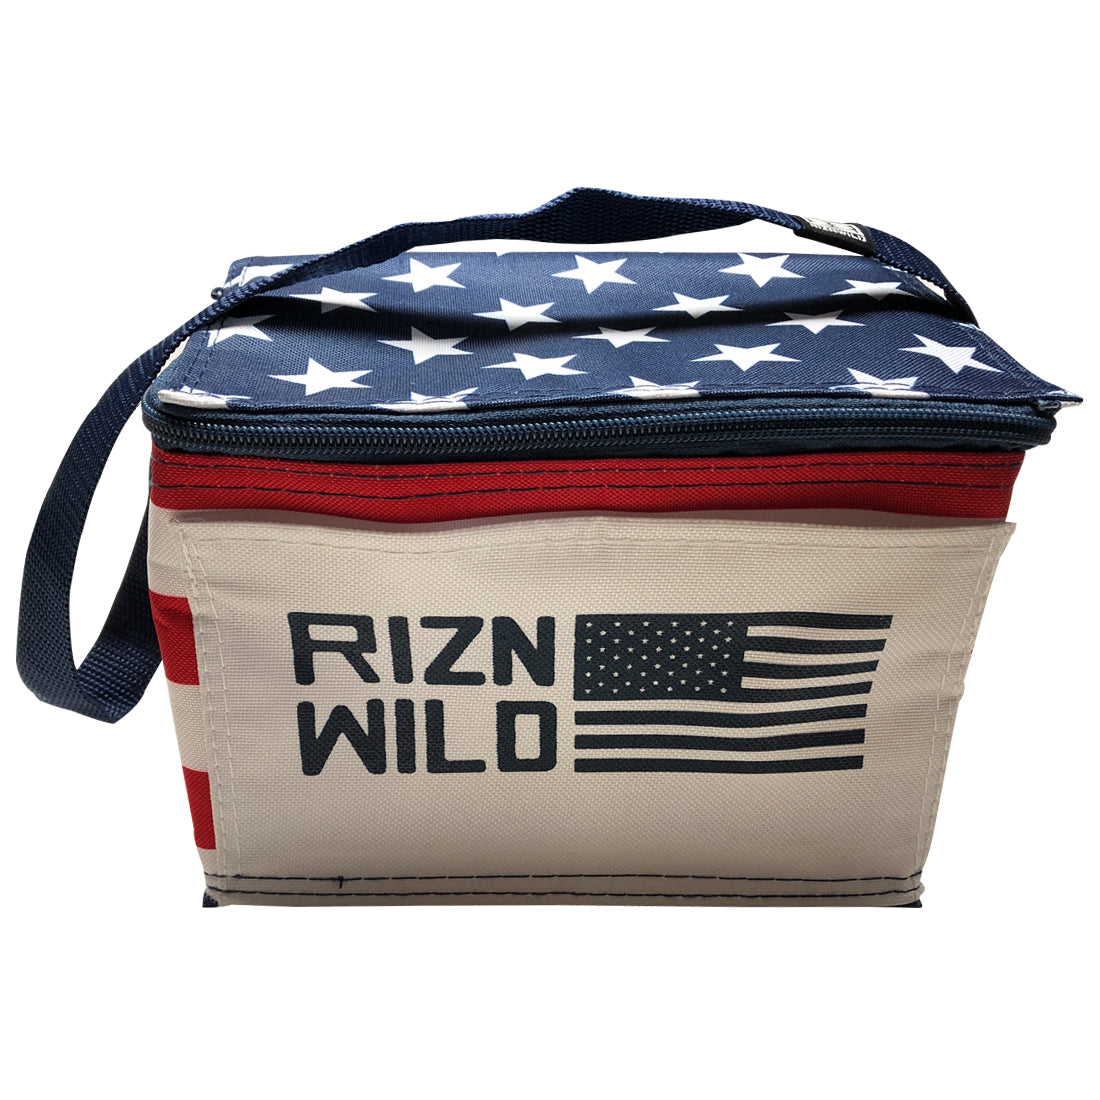 RIZNWILD 6-pack stars and stripes cooler